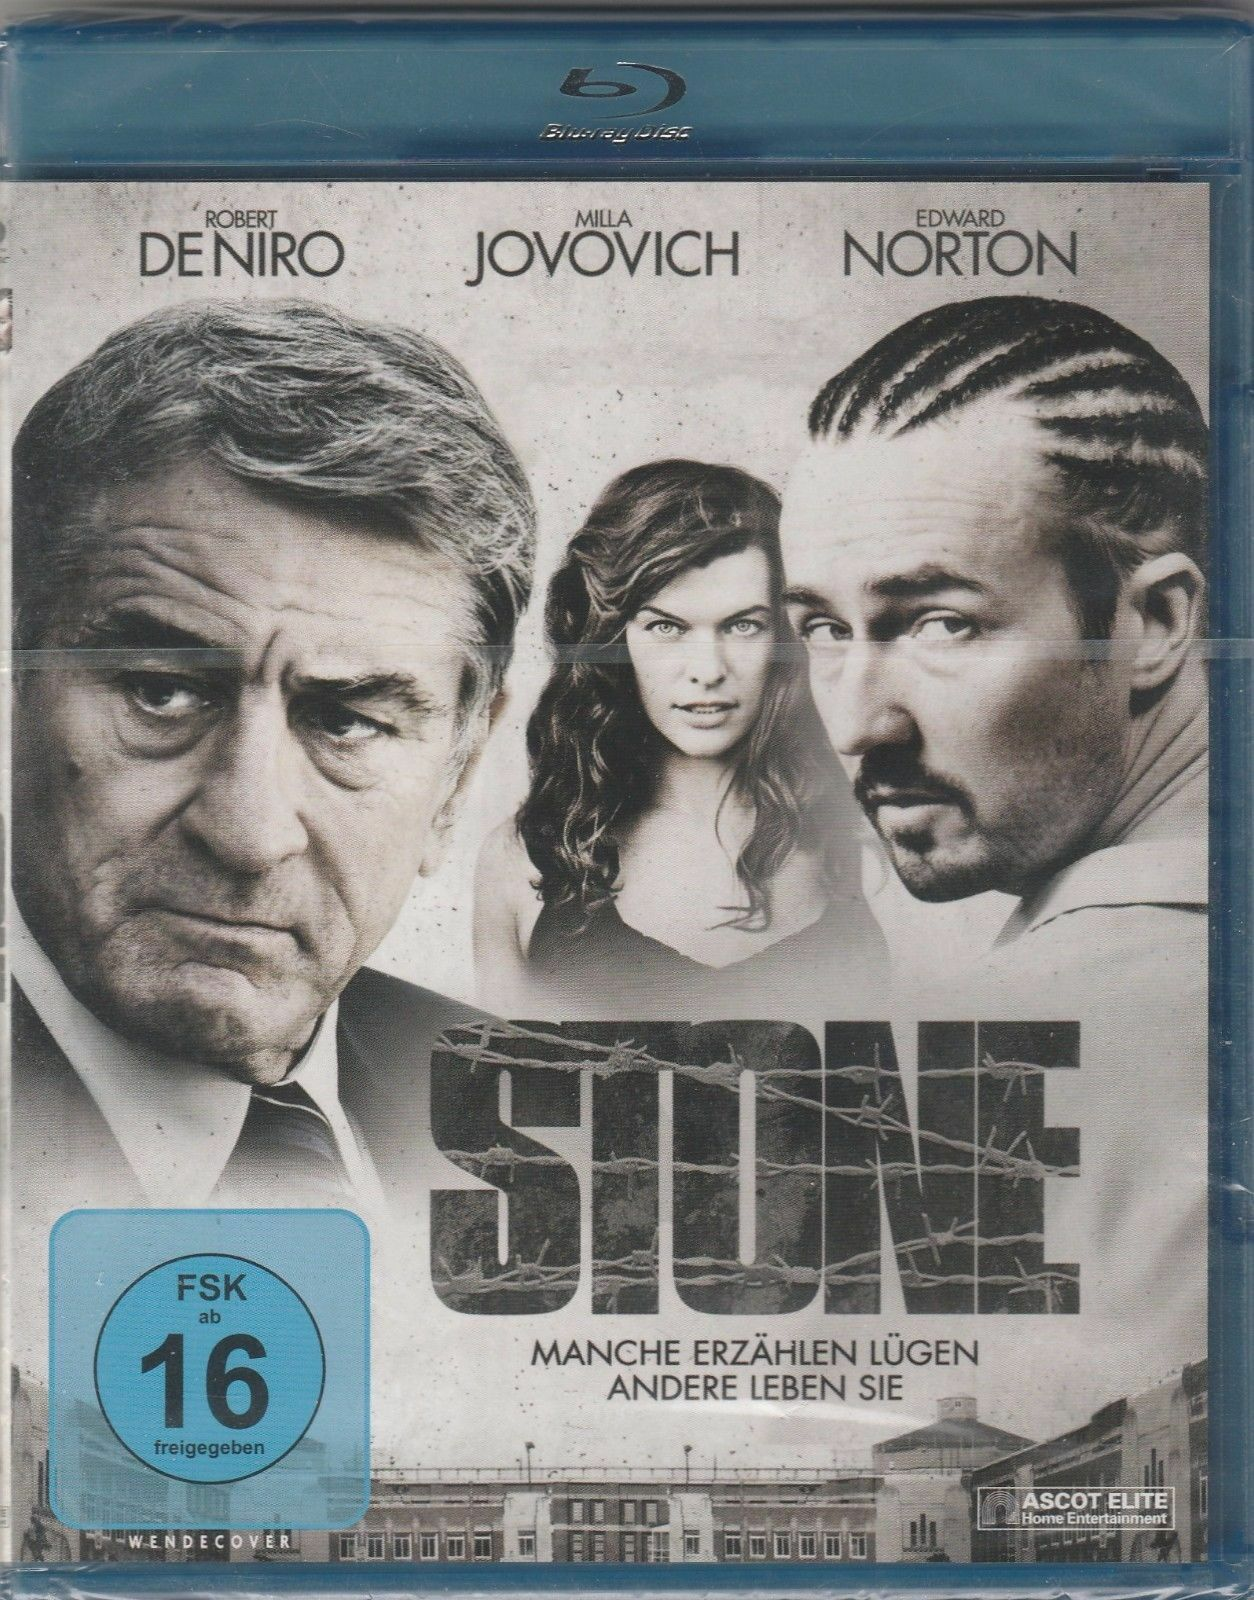 Stone / Bluray / Robert de Niro / Edward Norton / Billigstes Angebot bei Ebay